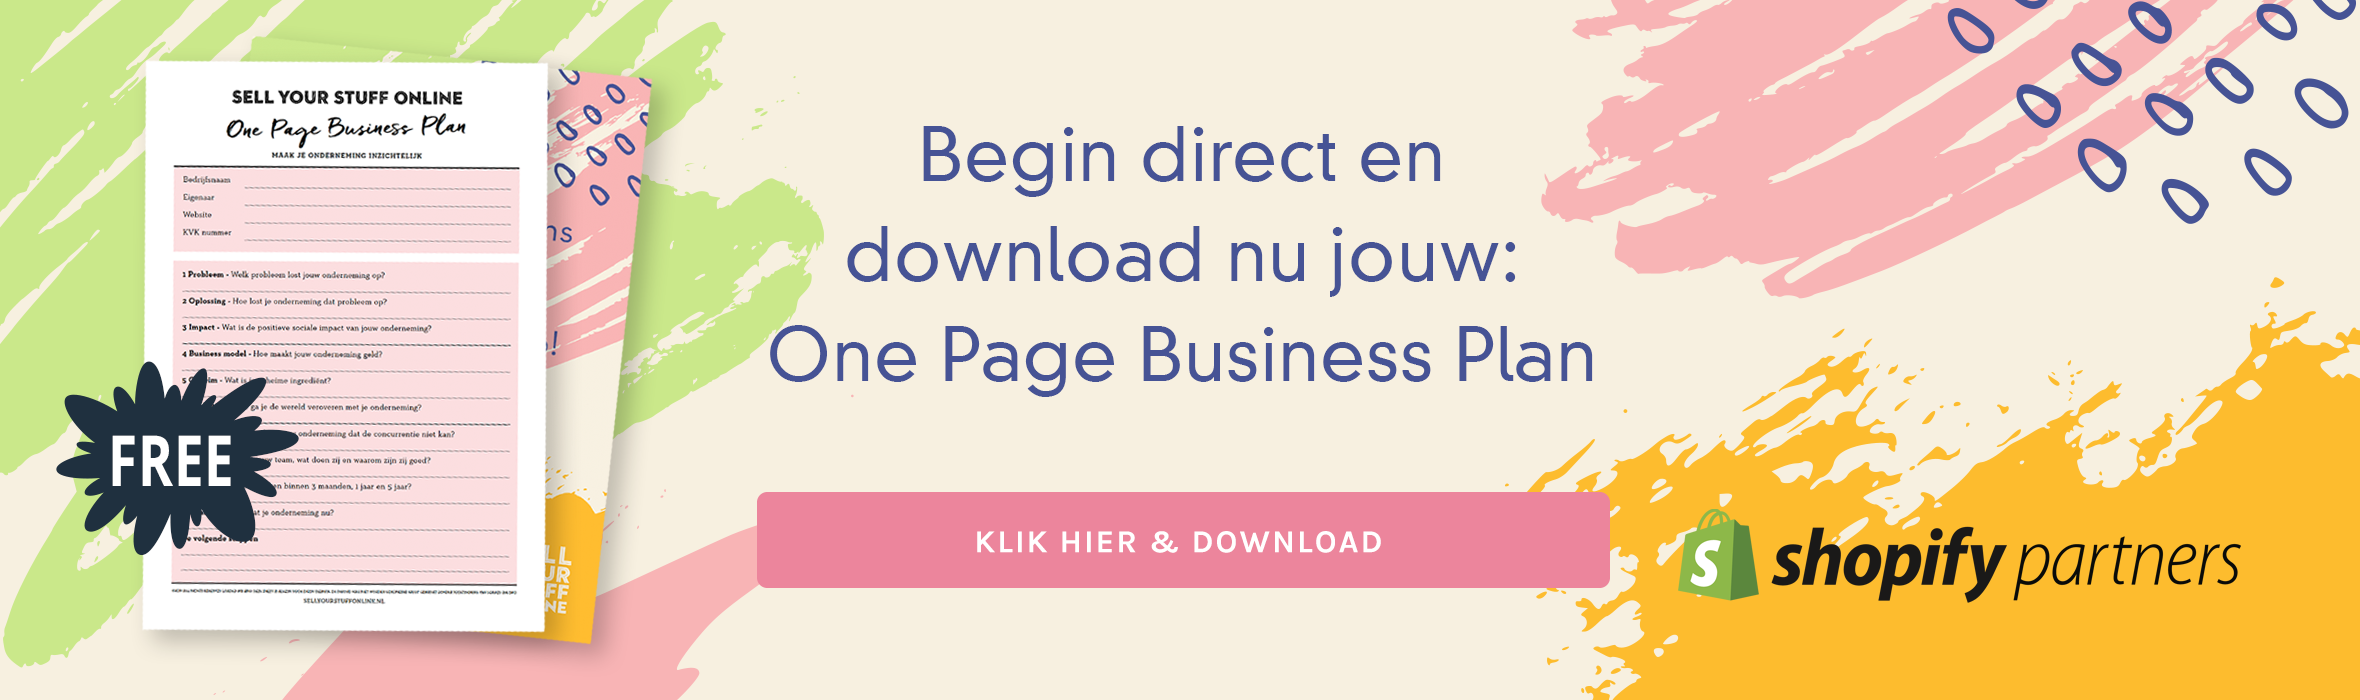 One Page Business Plan Nederlands